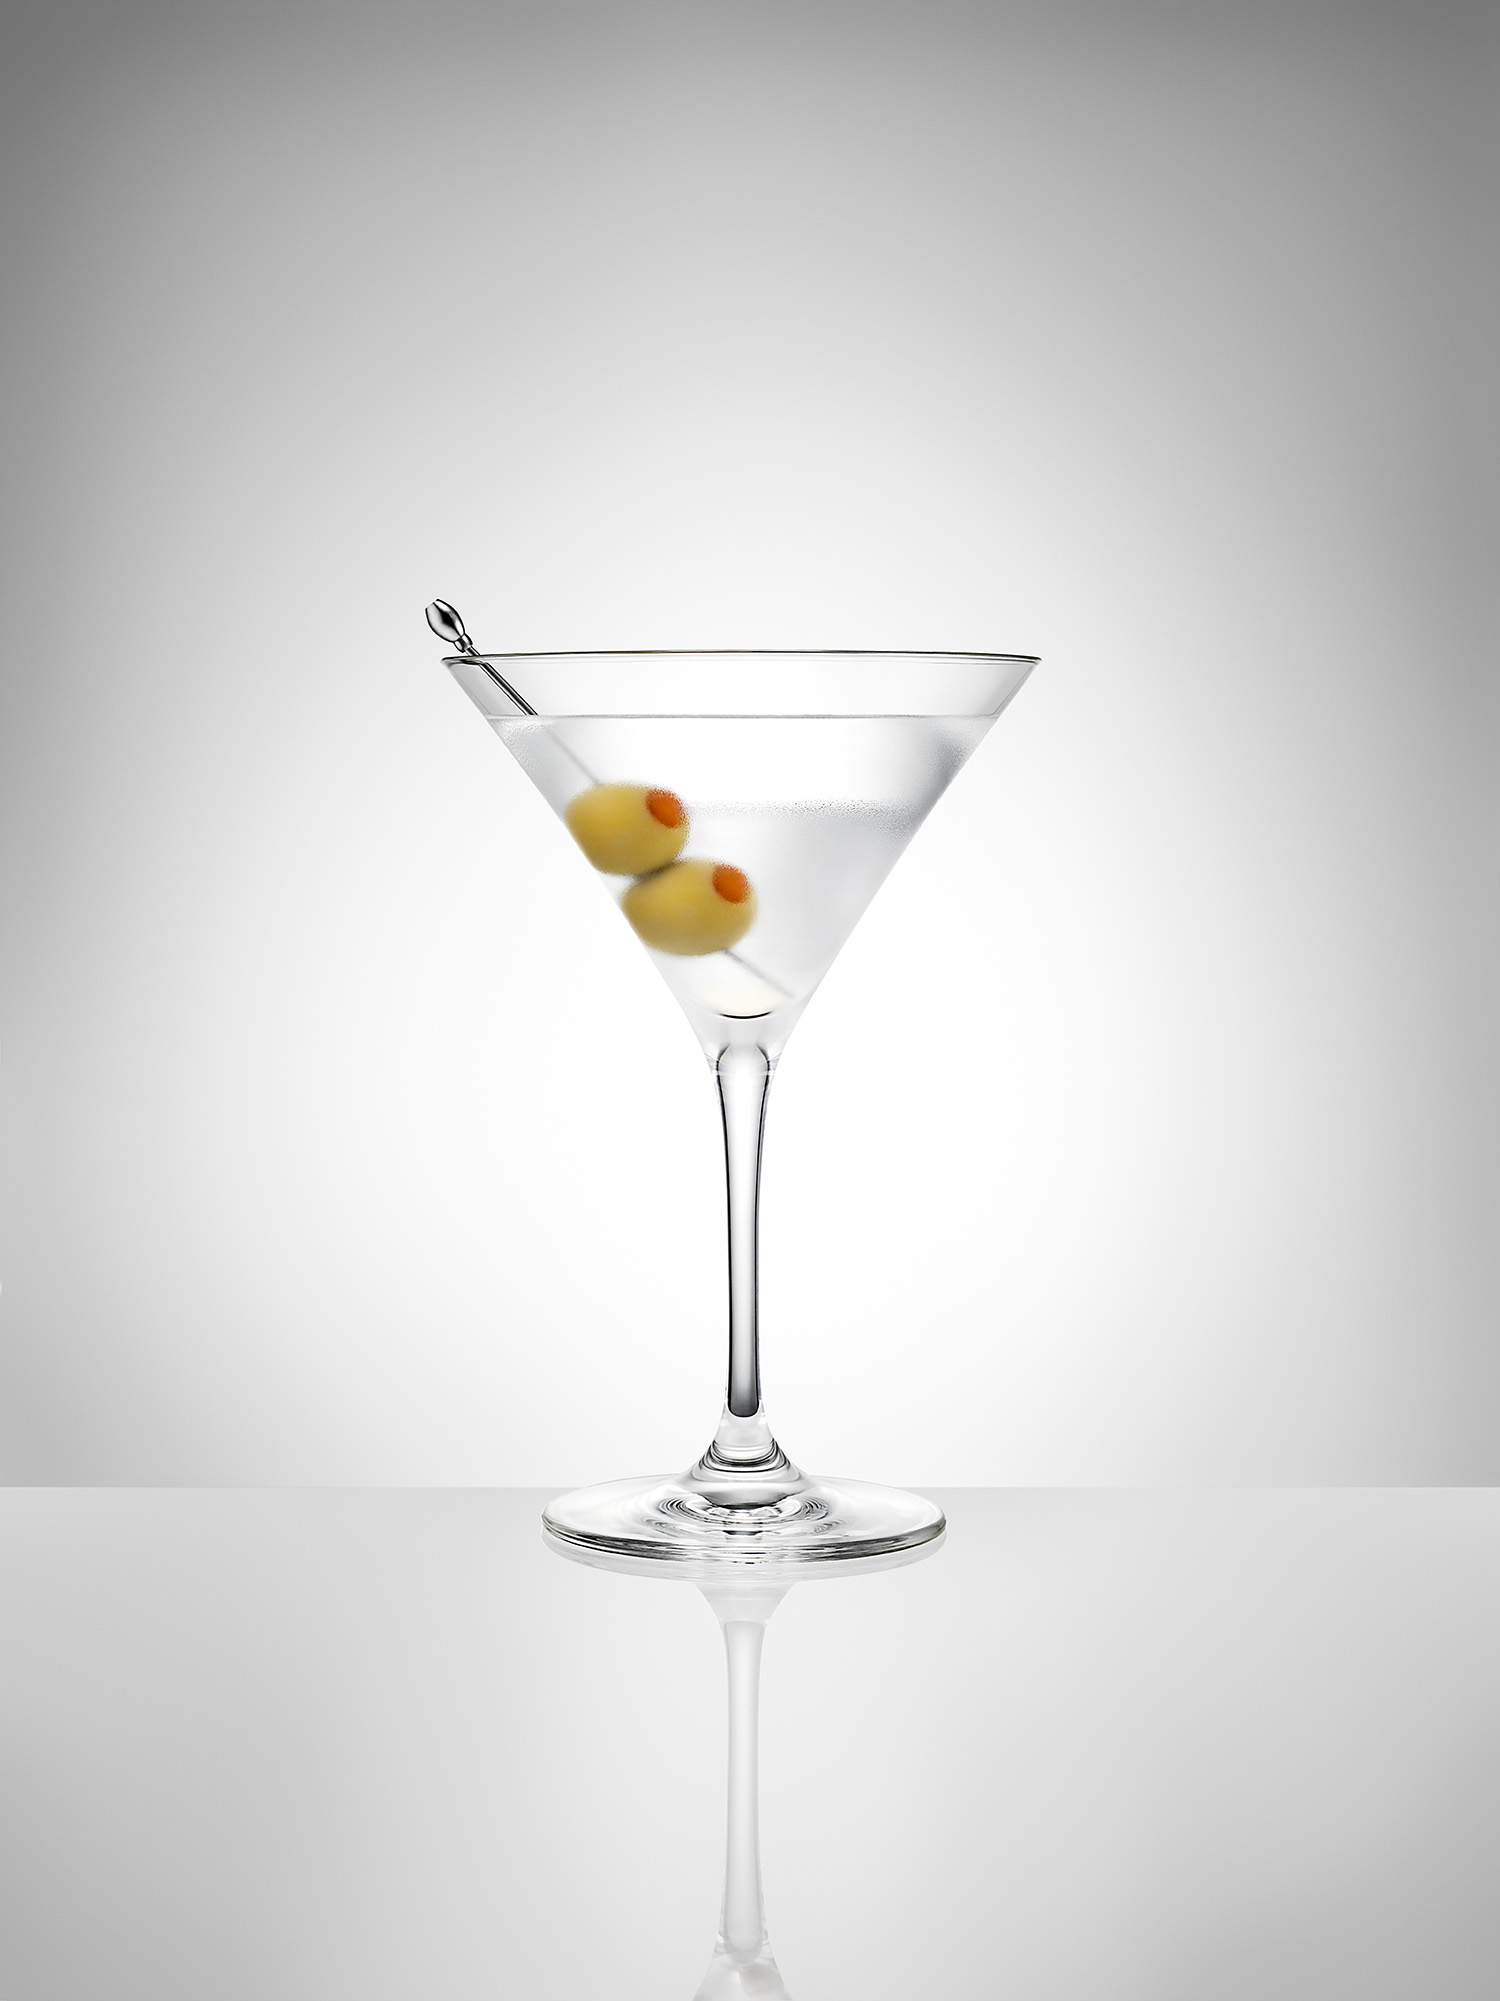 1850in_A_ZS PMax 0018-19-Martini-19 copy.jpg